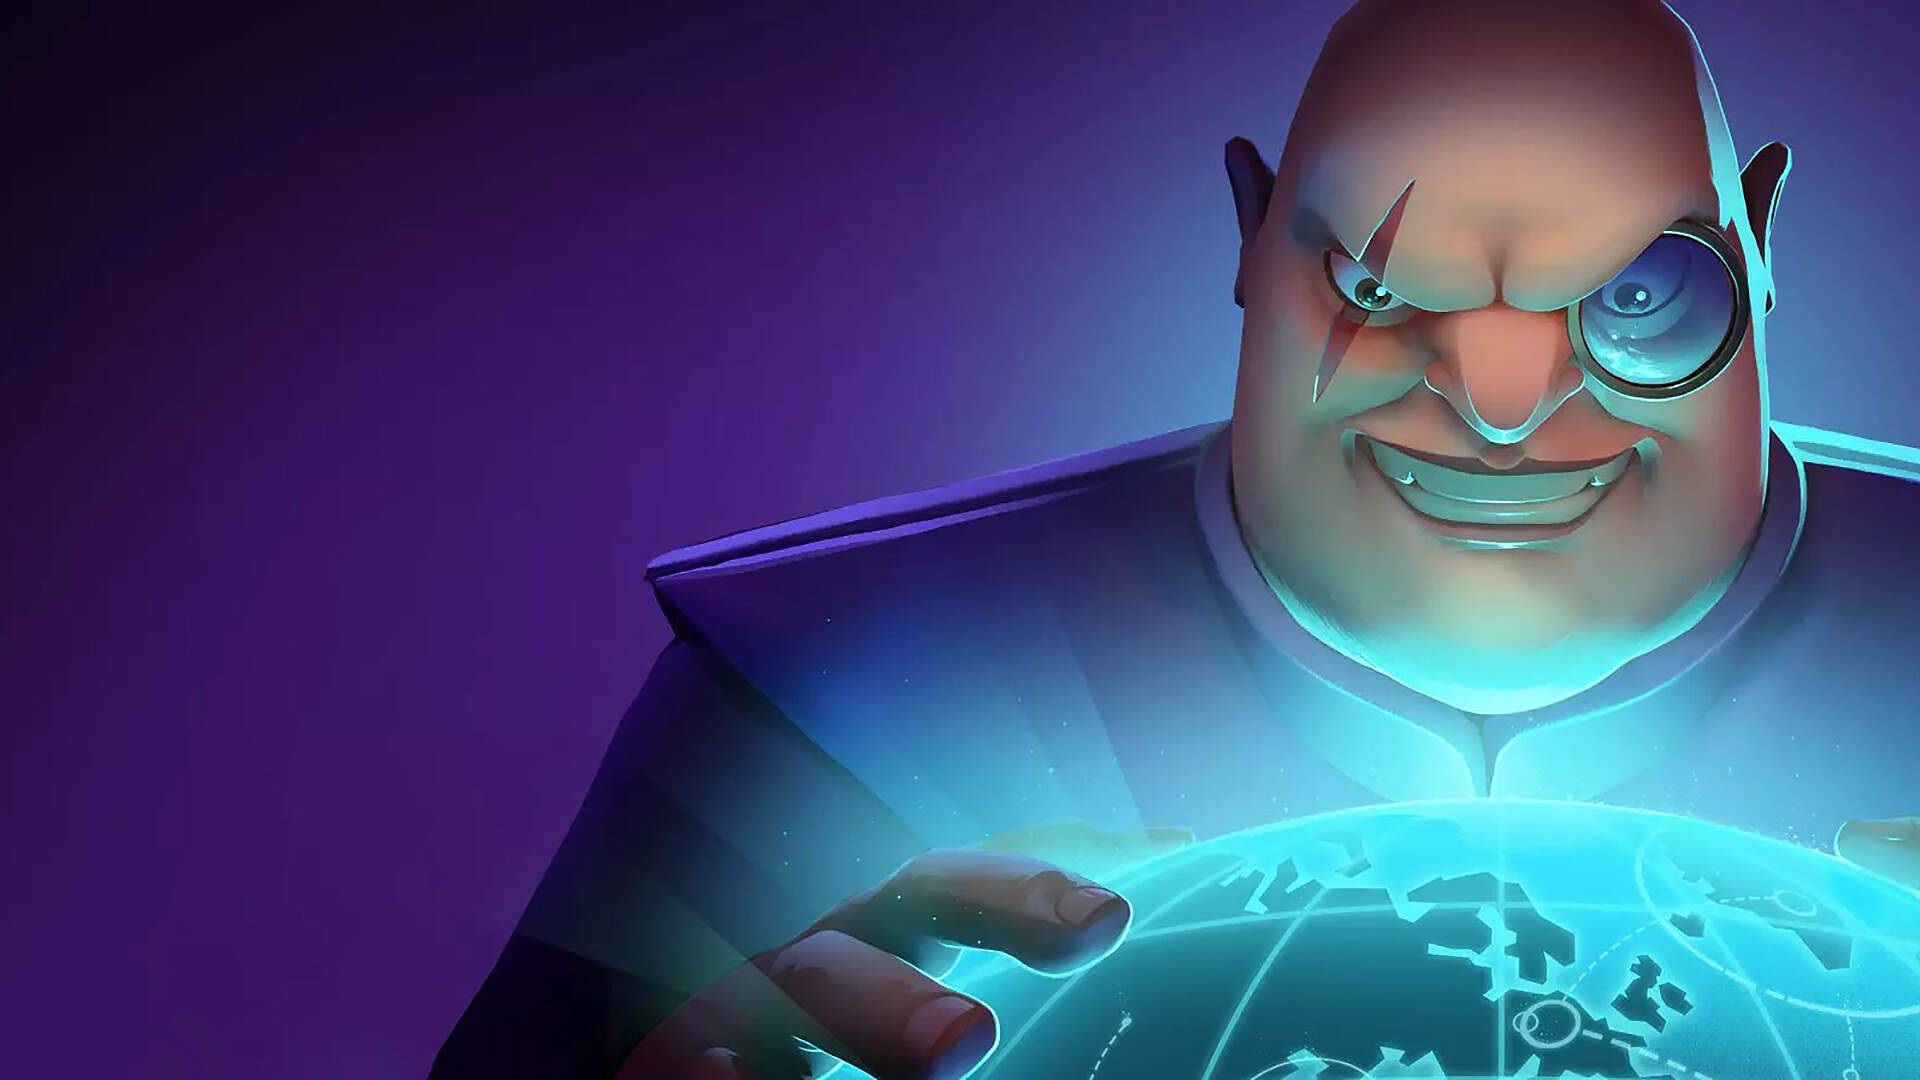 Evil Genius 2 Shows Off Some Gameplay